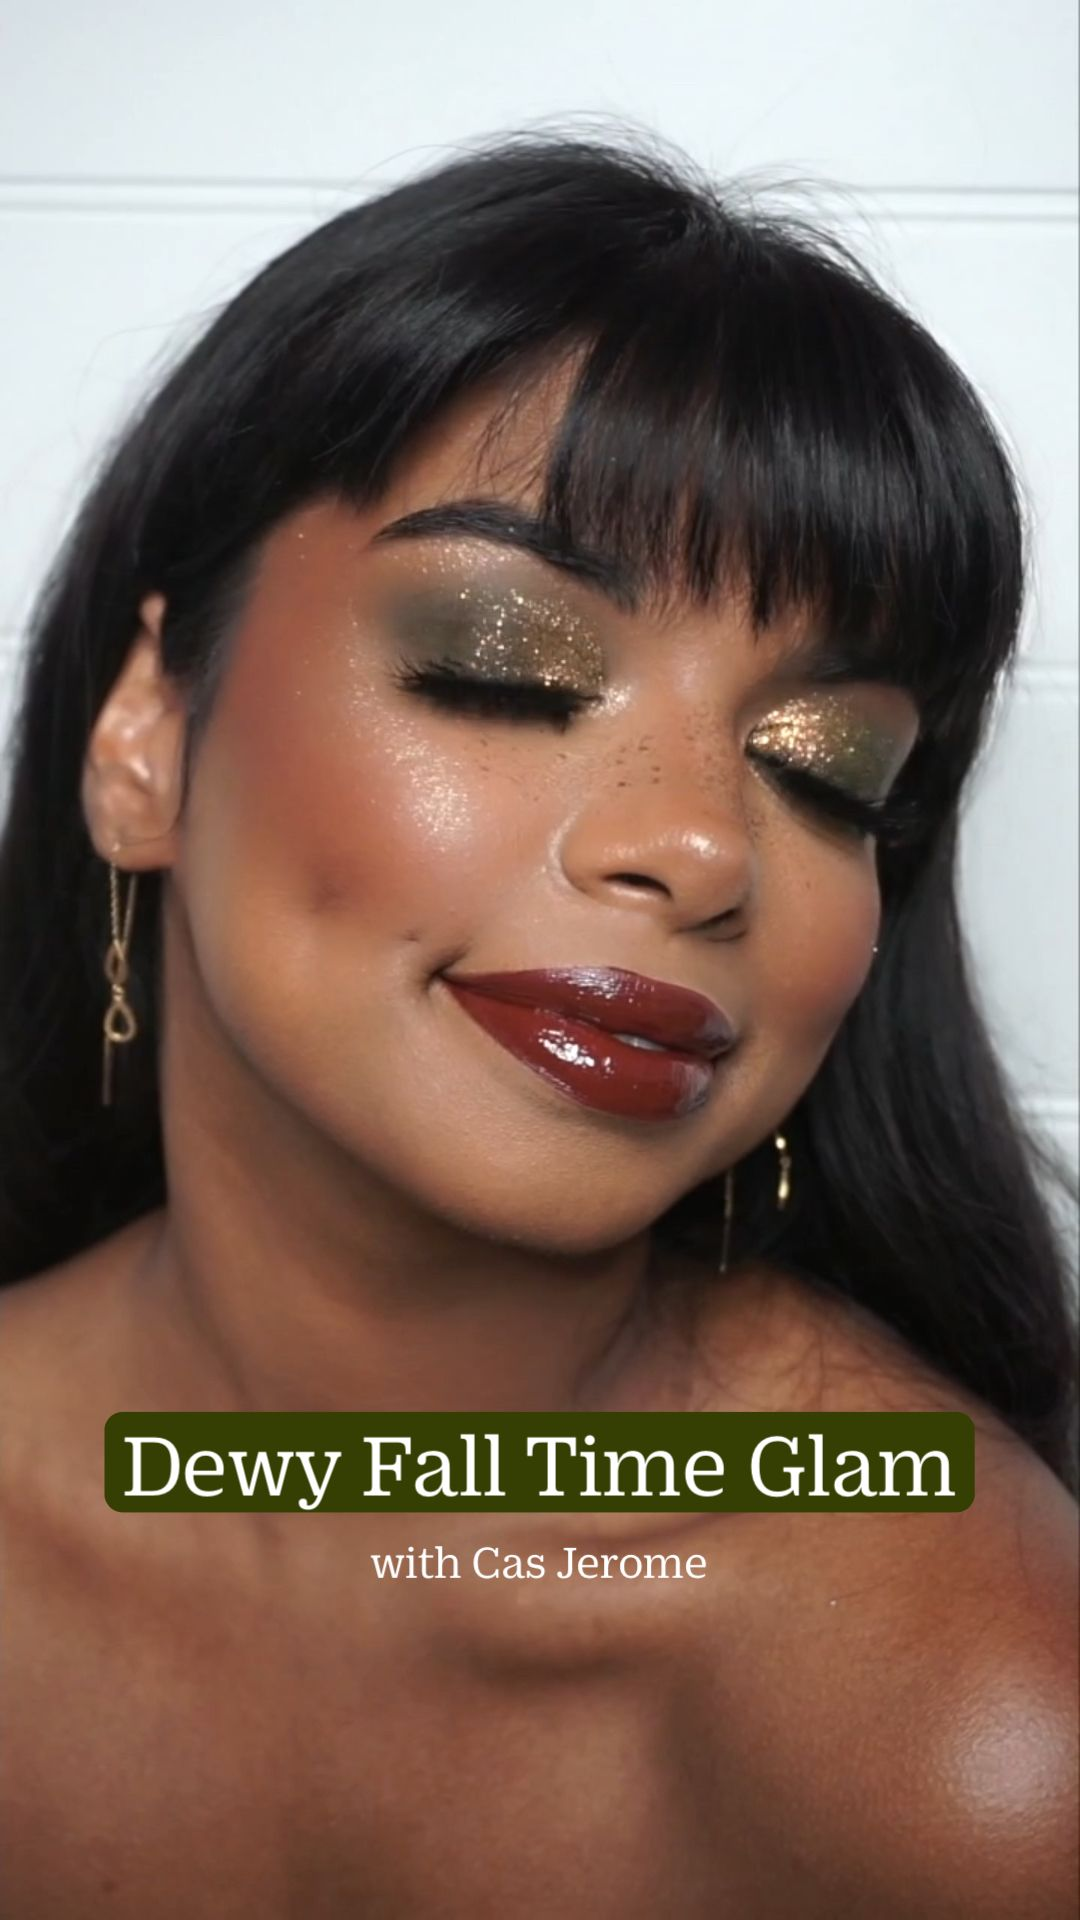 Dewy Fall Time Glam